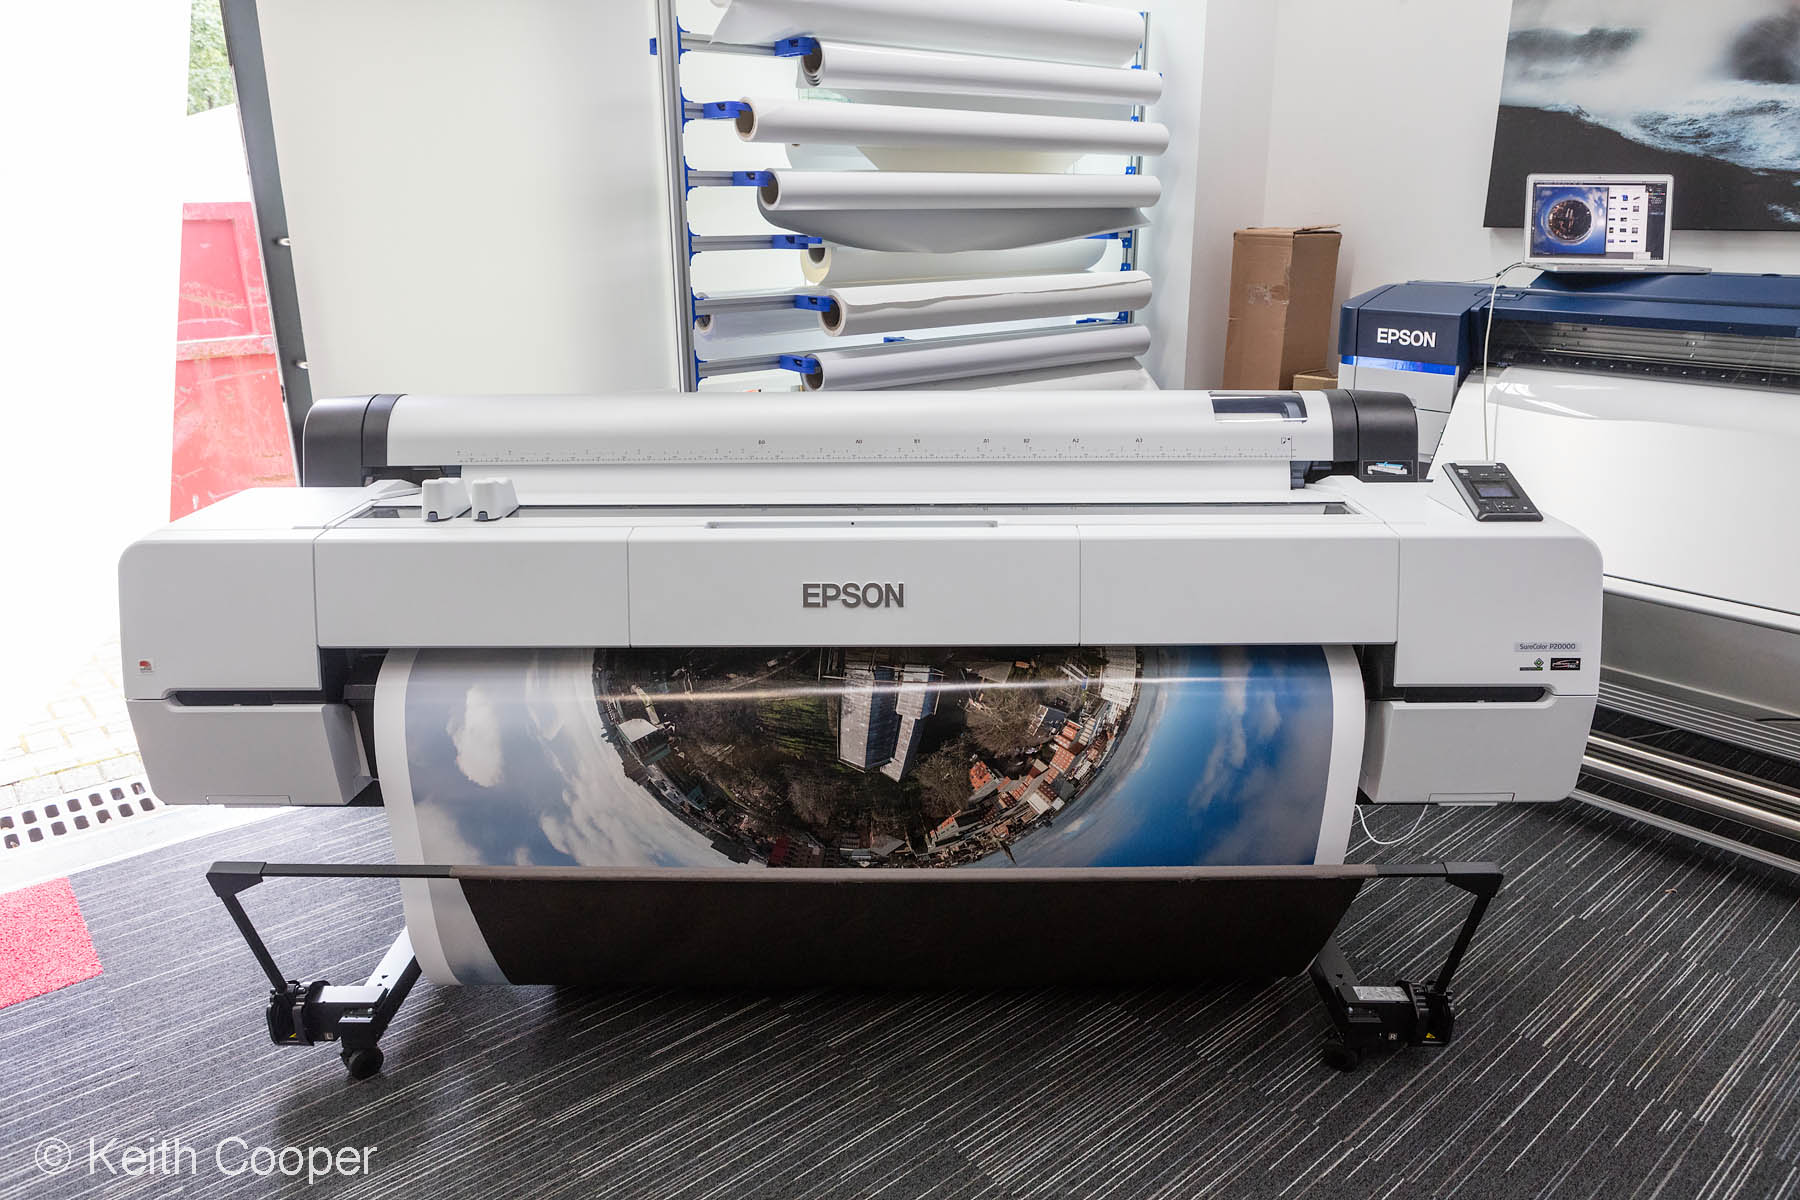 P20000 printing 64 inch width paper